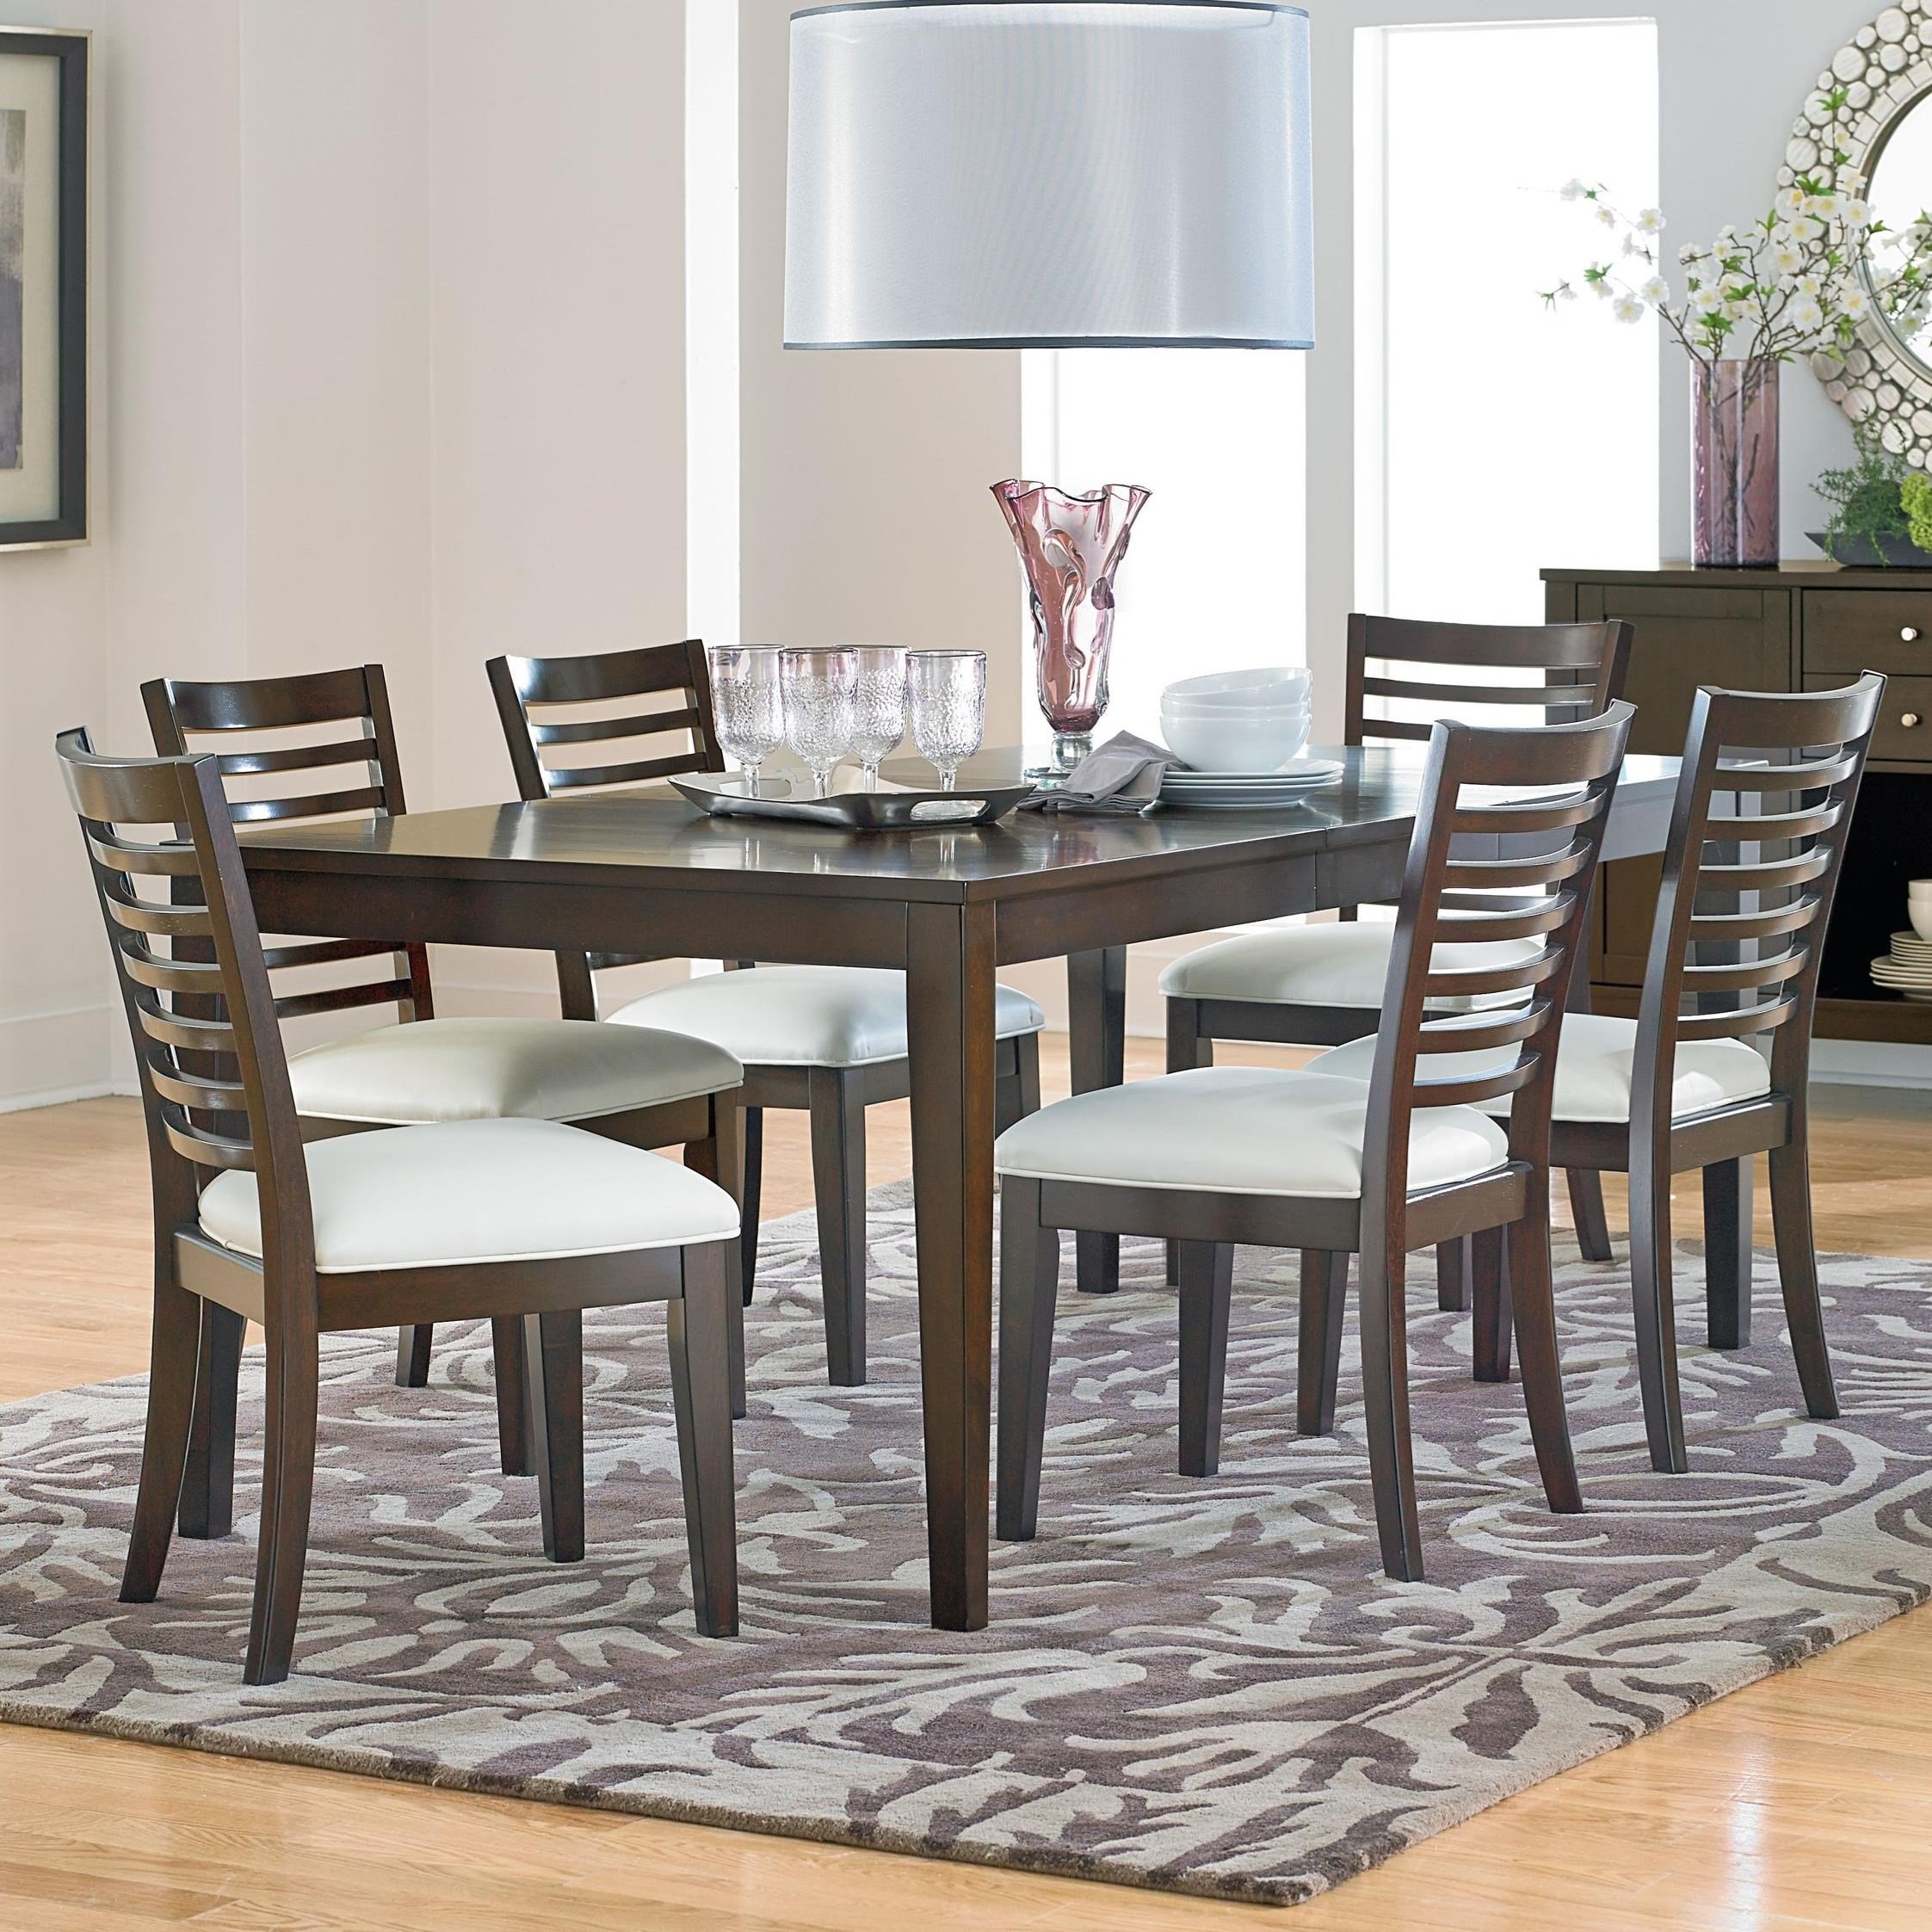 Standard Furniture Noveau Dining Table and Chair Set - Item Number: 17561+6x17564